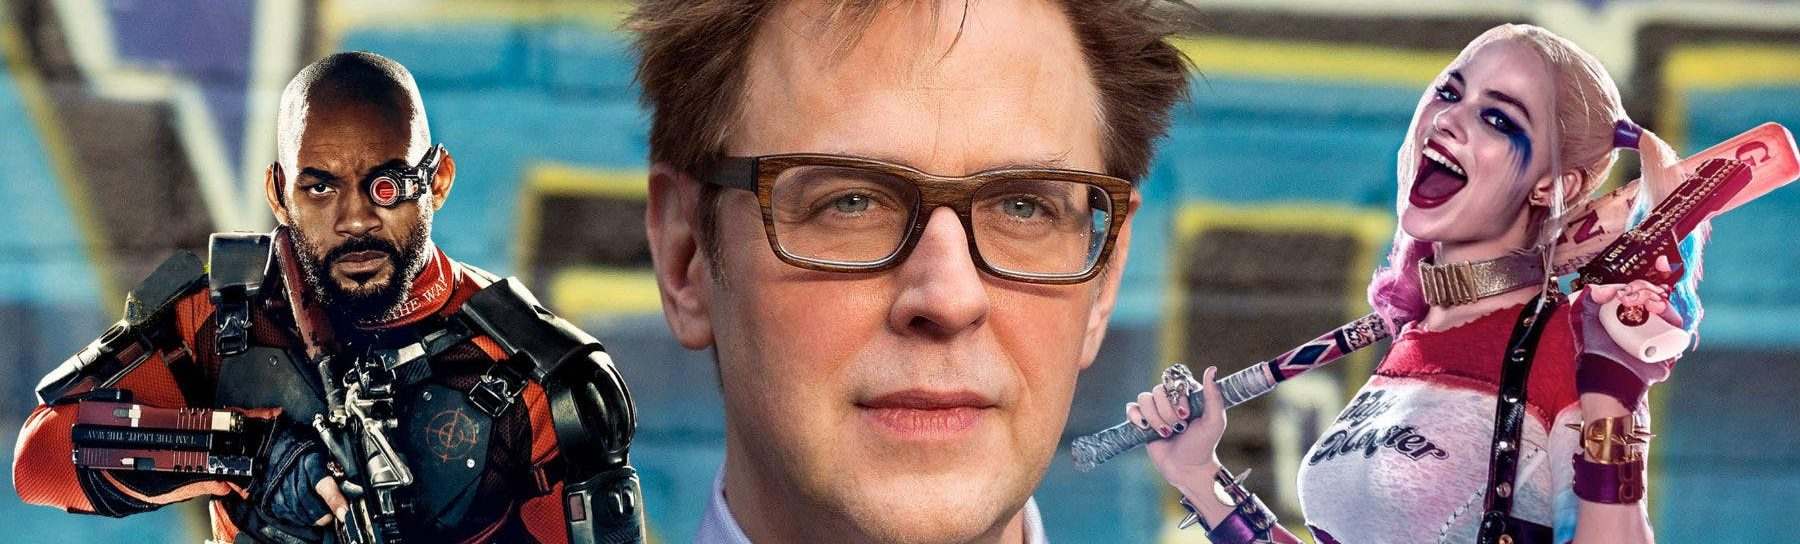 Suicide Squad 2′: James Gunn to Direct for Warner Bros!!! | Welcome